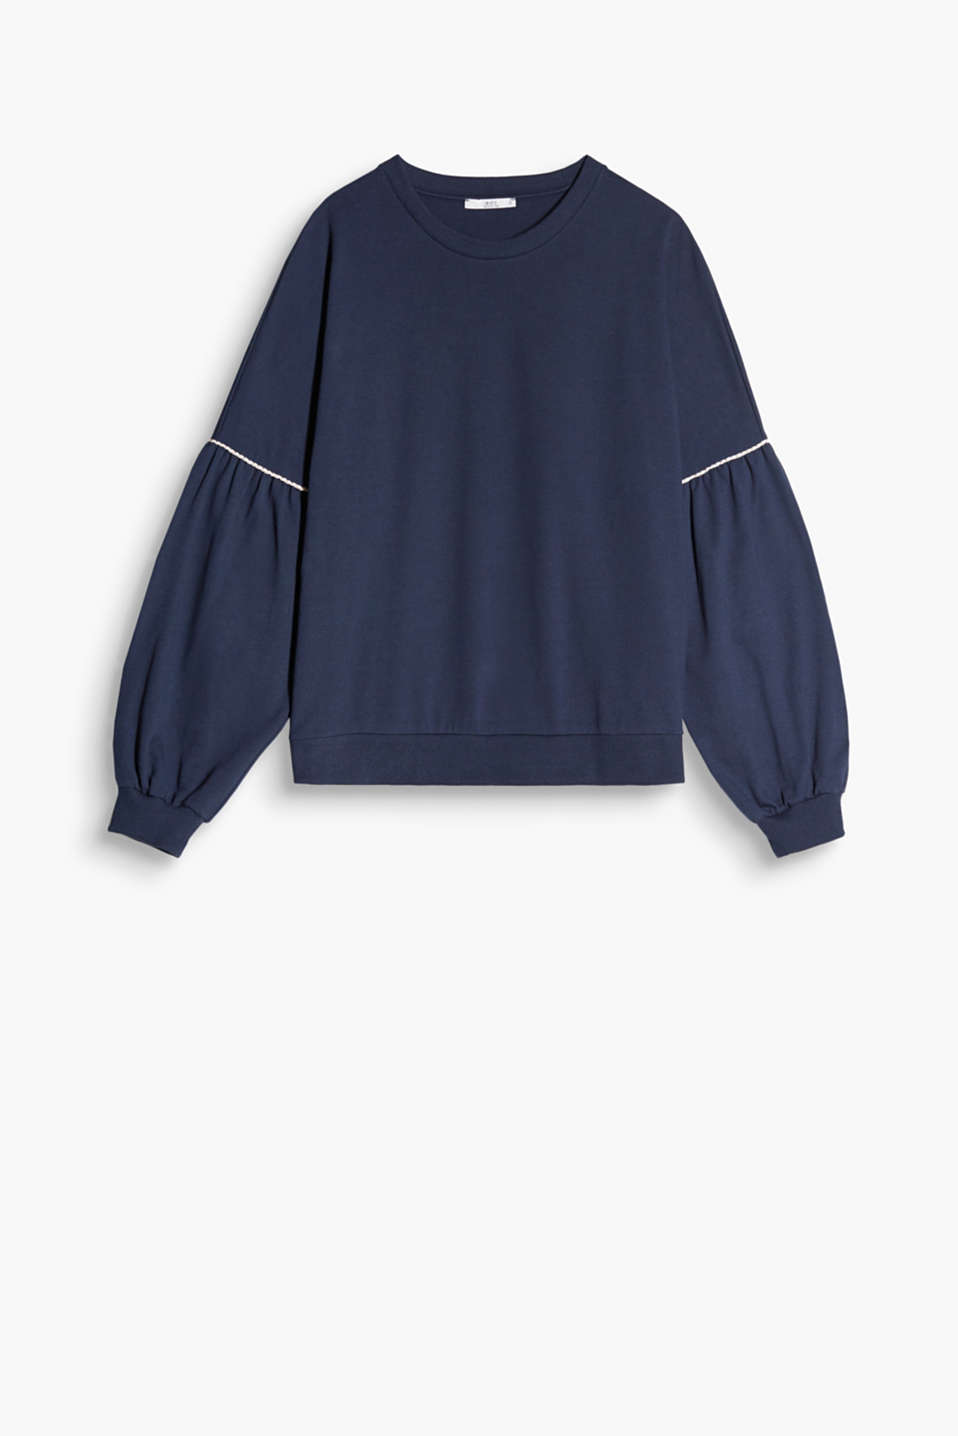 Soft, stretch cotton sweatshirt with dropped shoulders and balloon sleeves